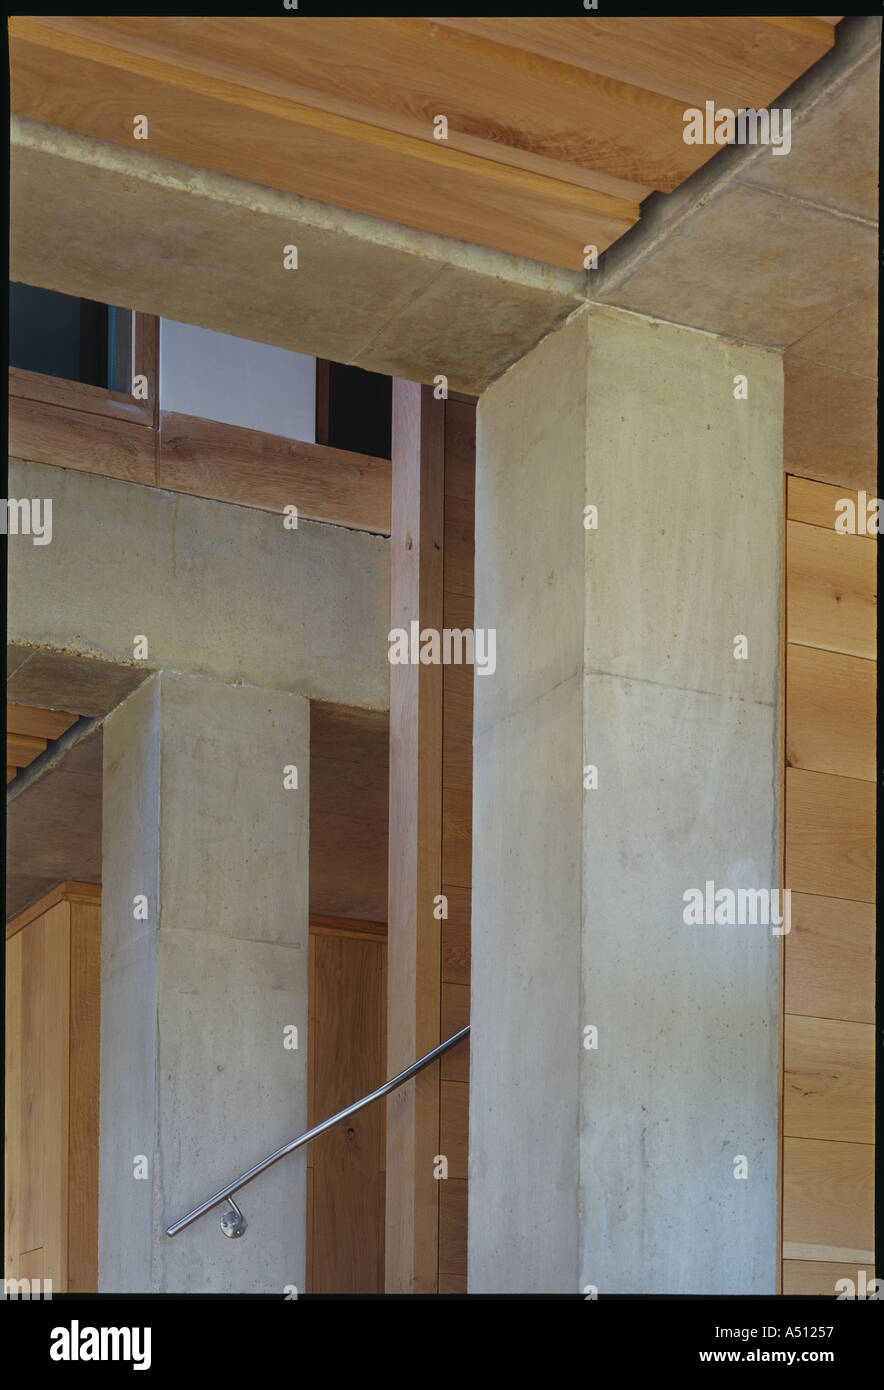 The lodge whithurst park interior detail exposed fair faced stock photo royalty free image for Exposed concrete walls interior